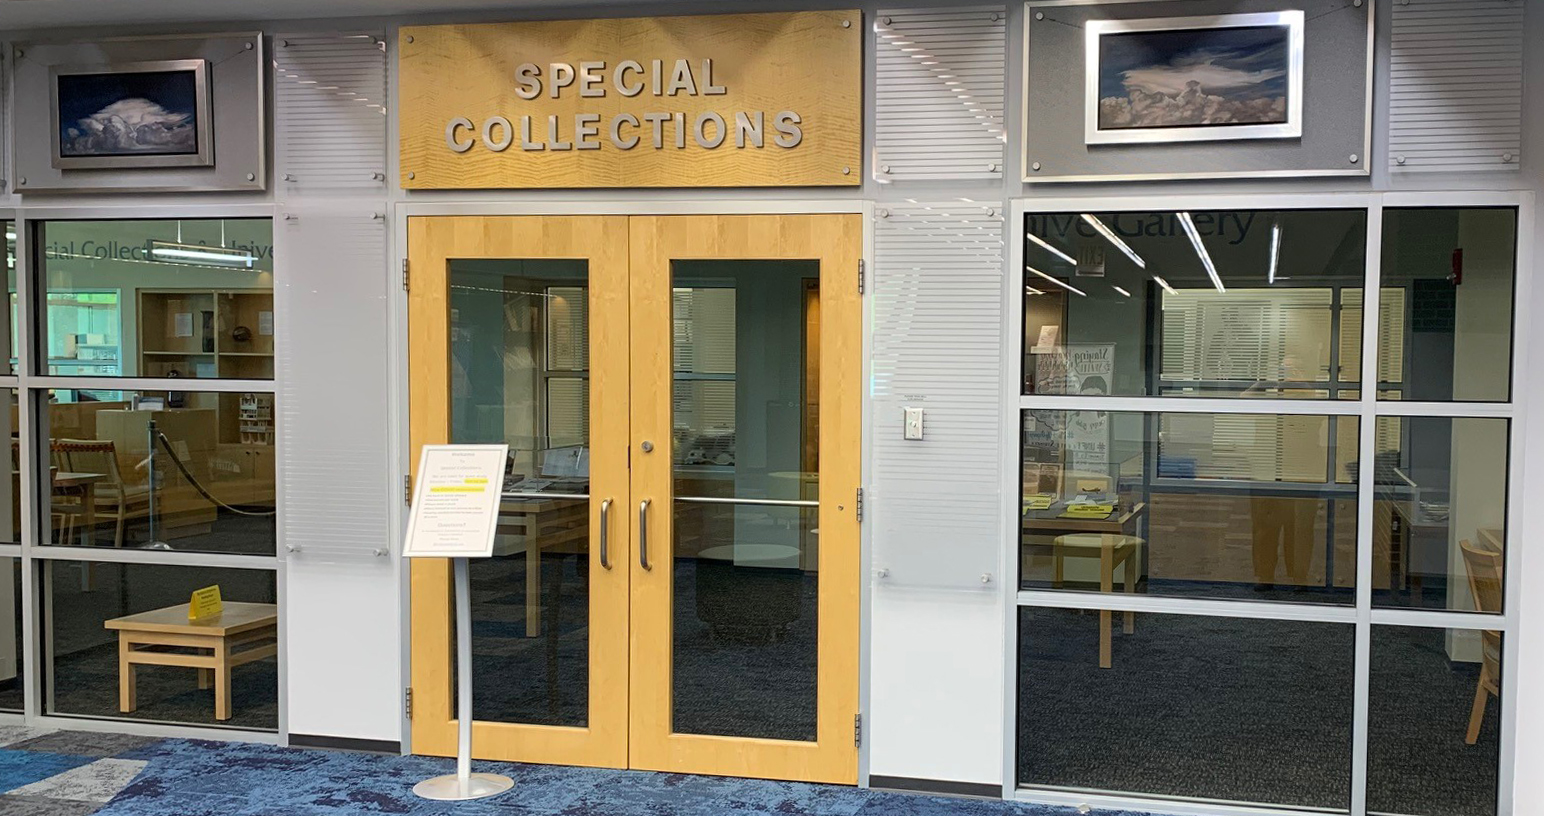 The entrance to Special Collections in the Thomas G. Carpenter Library.